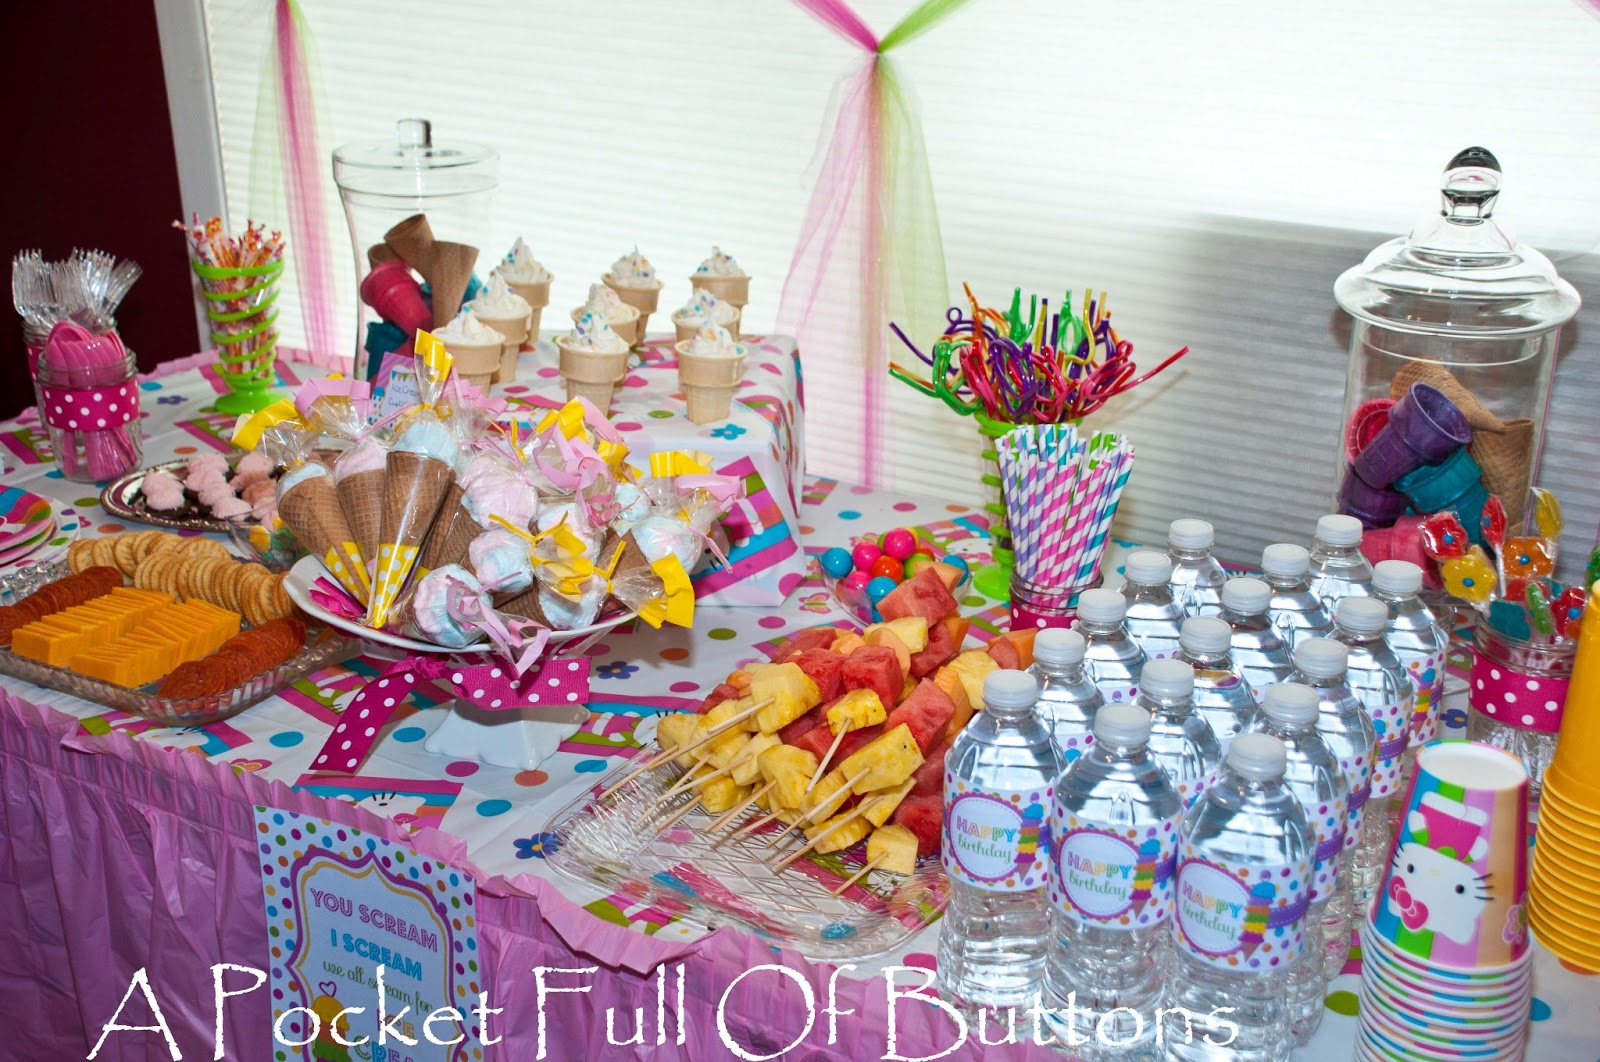 a pocket full of buttons hello kitty ice cream social birthday party